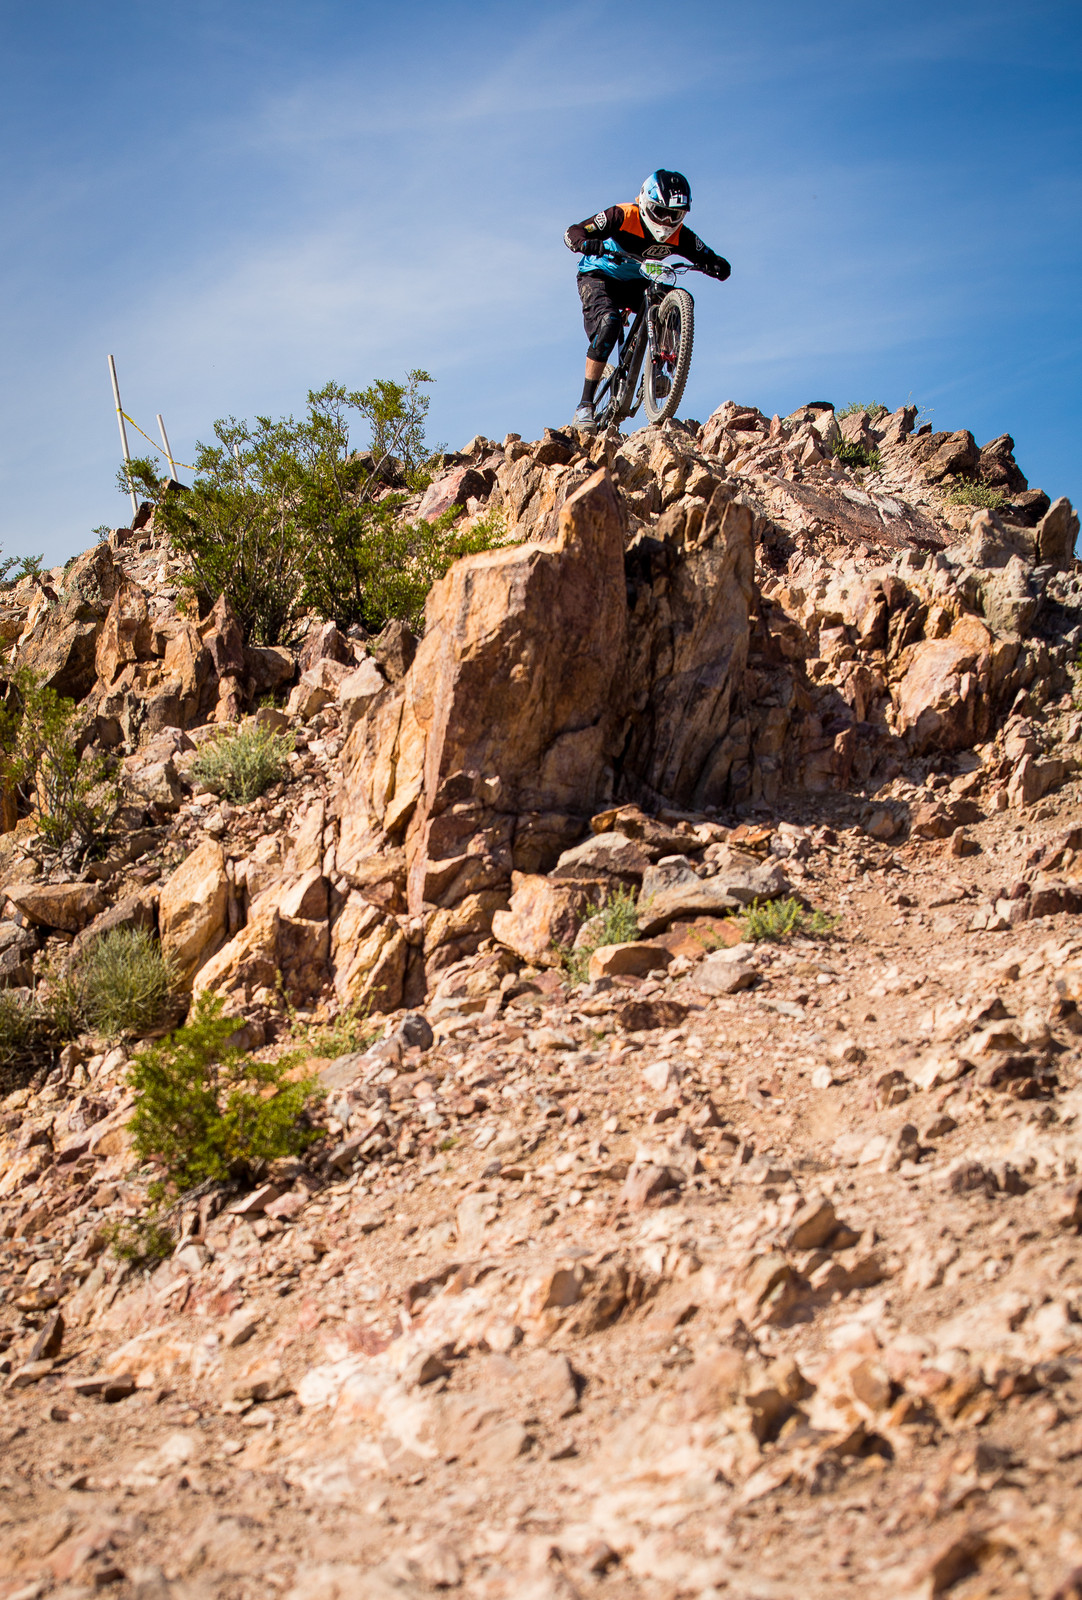 2017 Reaper Madness DH at Bootleg Canyon-5 - 2017 Reaper Madness DH Photos - Mountain Biking Pictures - Vital MTB